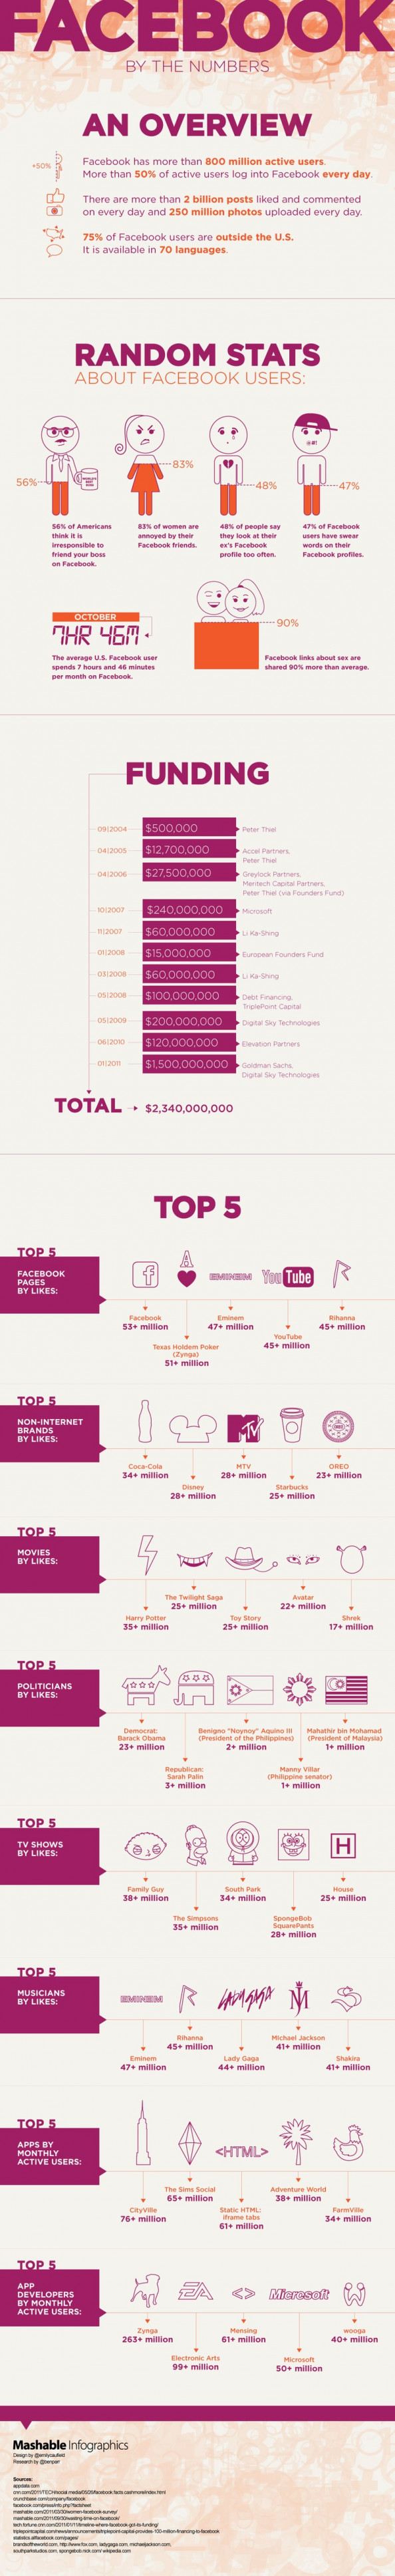 Facebook by the Numbers - FriendUs Infographic